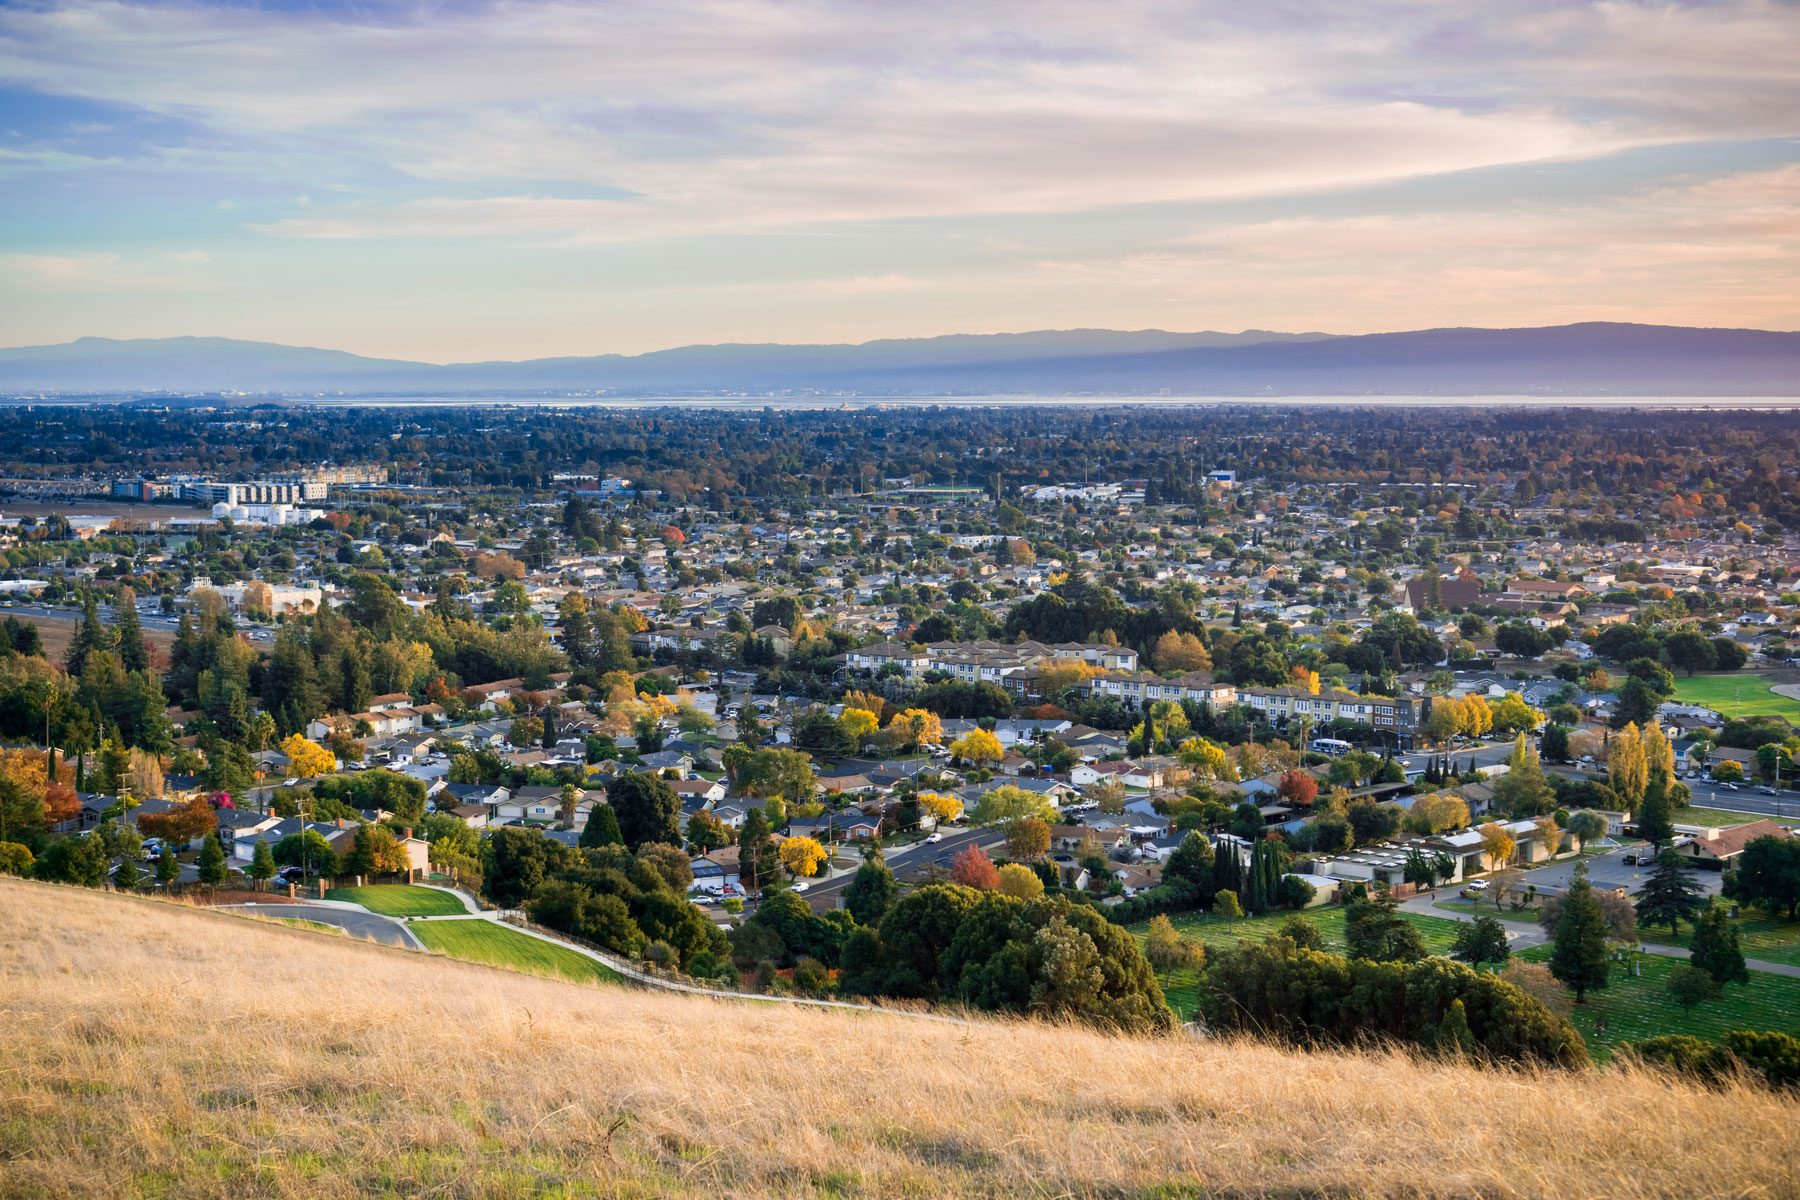 View towards Fremont and Union City from Garin Dry Creek Pioneer Regional Park